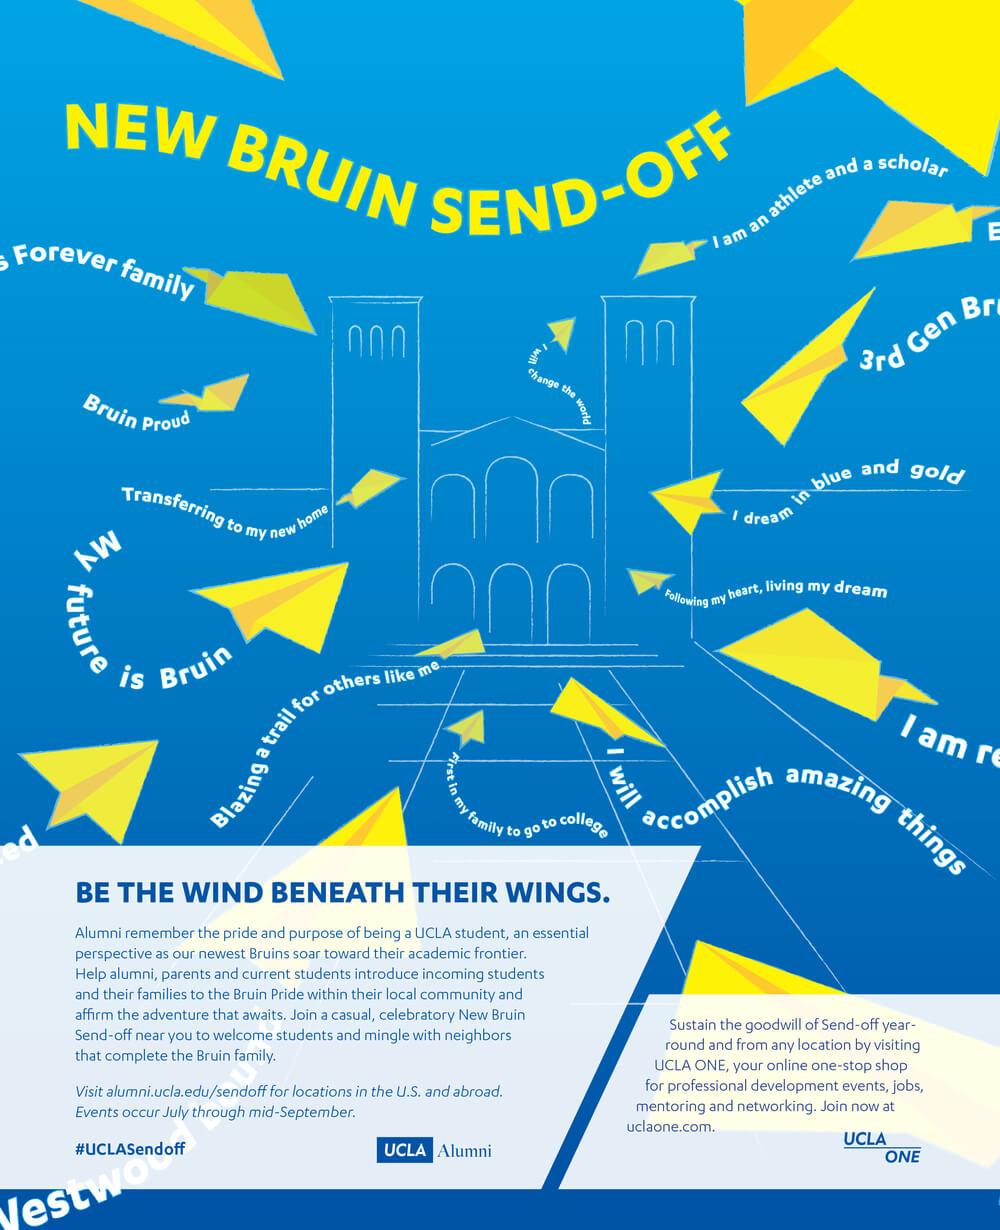 Magazine ad inviting alumni to participate in their local New Bruin Send-off, a party for incoming freshman before they leave their hometowns.